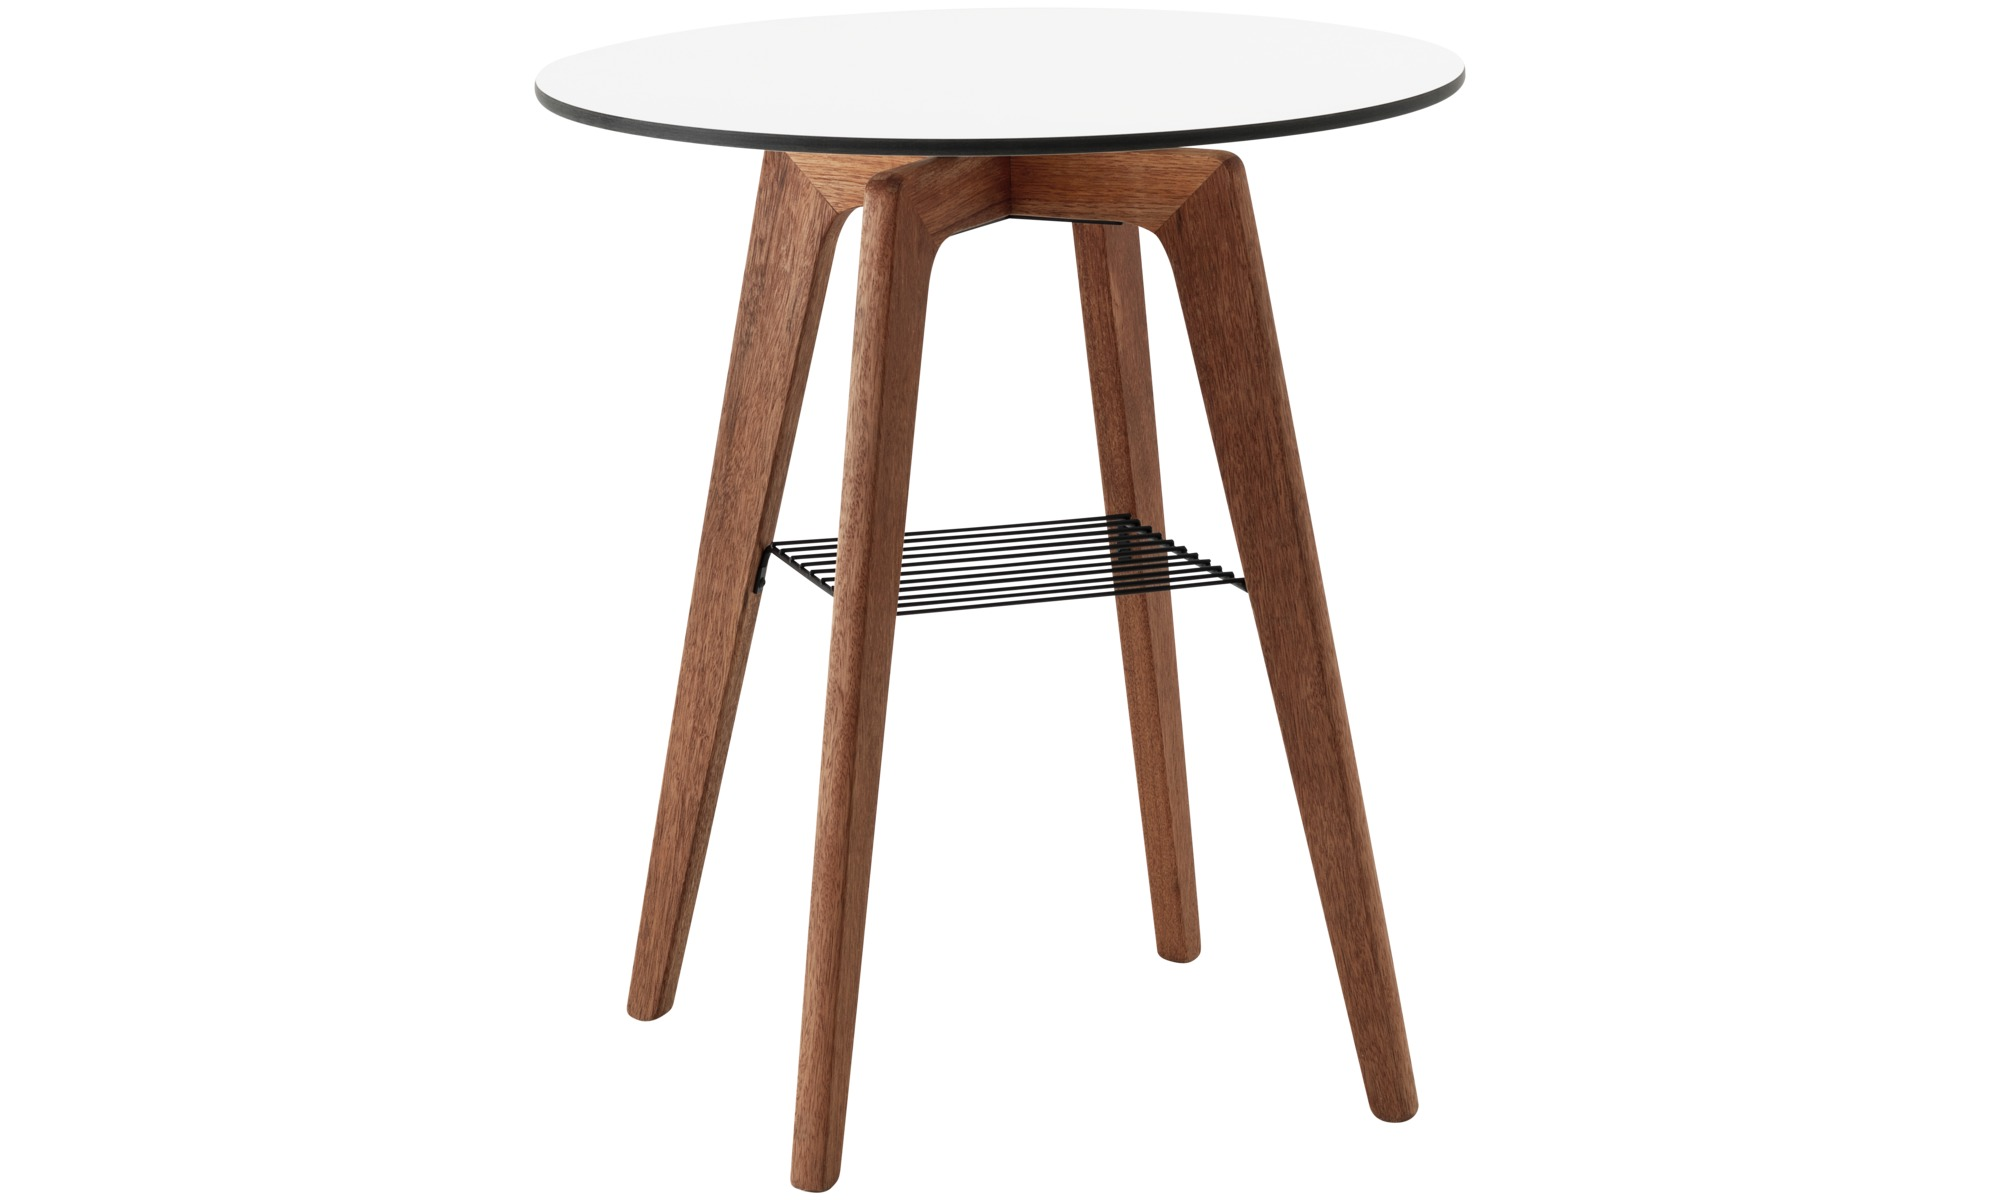 Cafe Stools Adelaide Bar Stools : 22553 from stools.beautytipsqueen.com size 2000 x 1200 jpeg 133kB